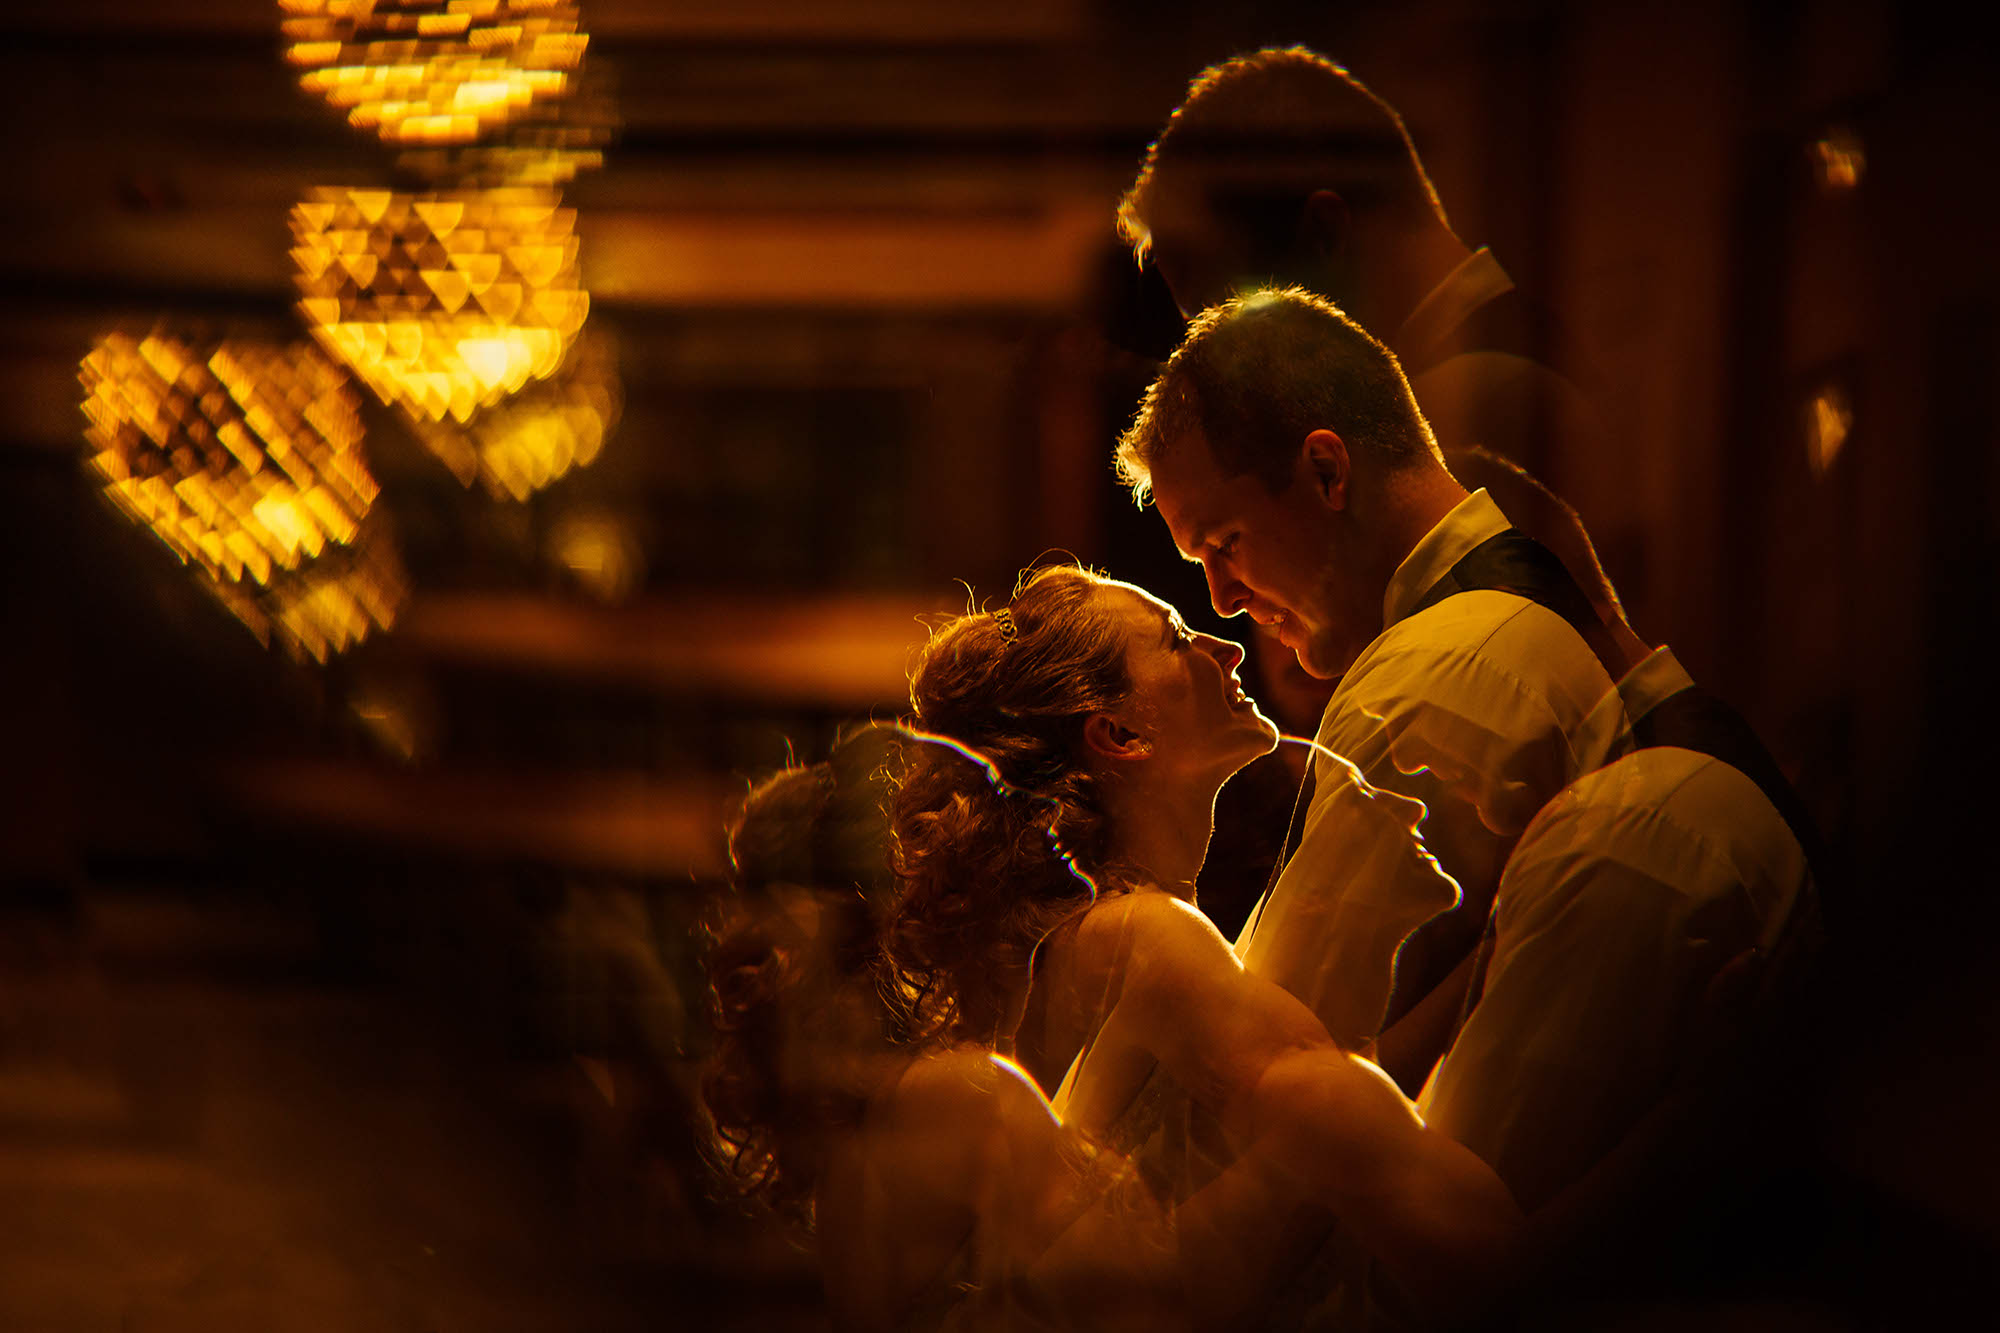 Multiple reflections of the bride and groom shot through a cut glass window at the Bertram Inn in Aurora, Ohio.